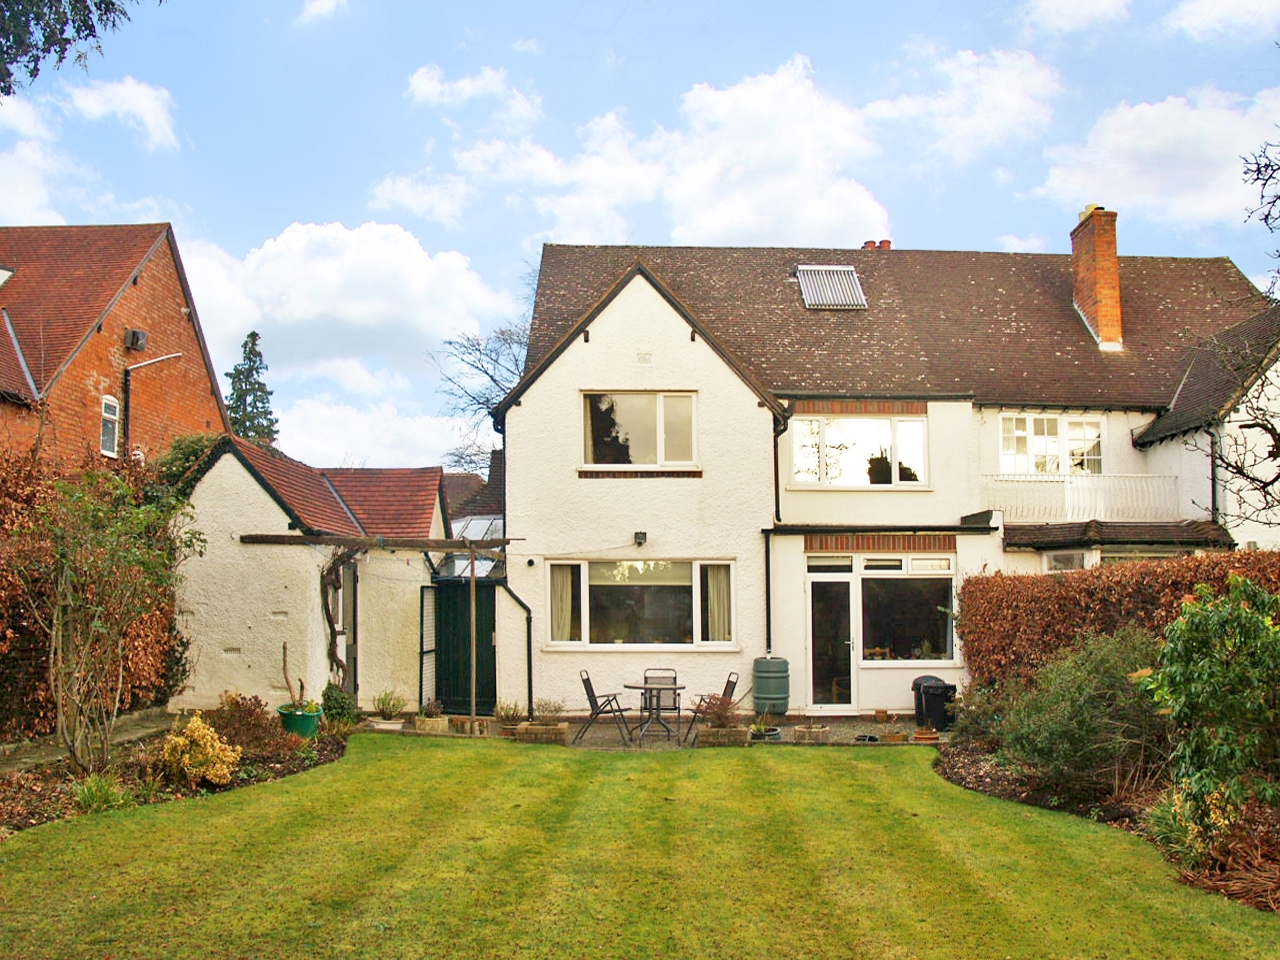 4 bedroom semi detached house SSTC in Solihull - photograph 9.